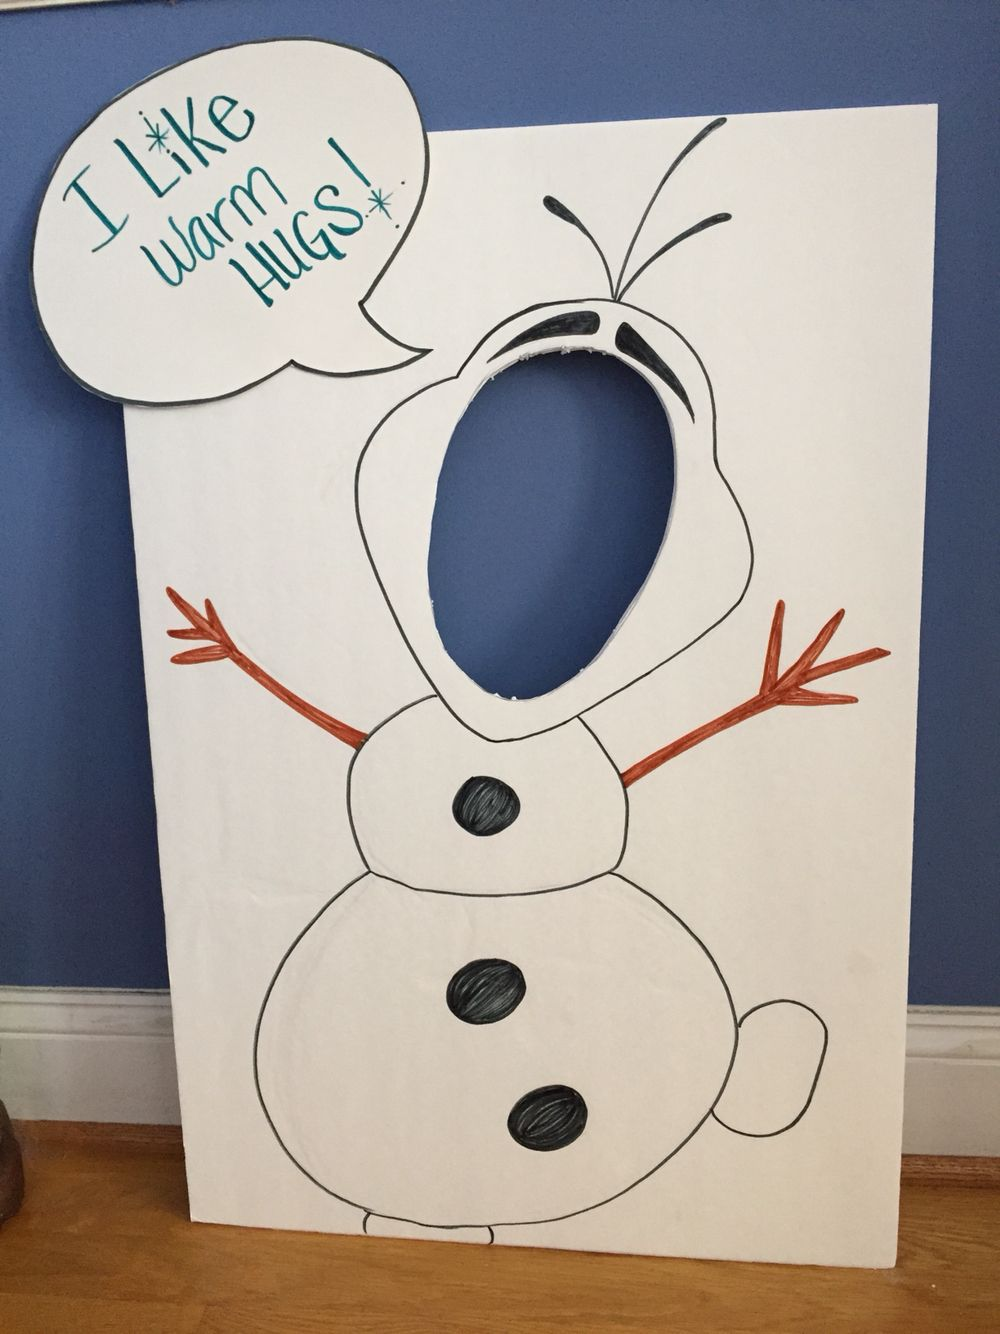 Olaf face cutout diy for baby girls birthday party olaf olaf face cutout diy for baby girls birthday party solutioingenieria Images